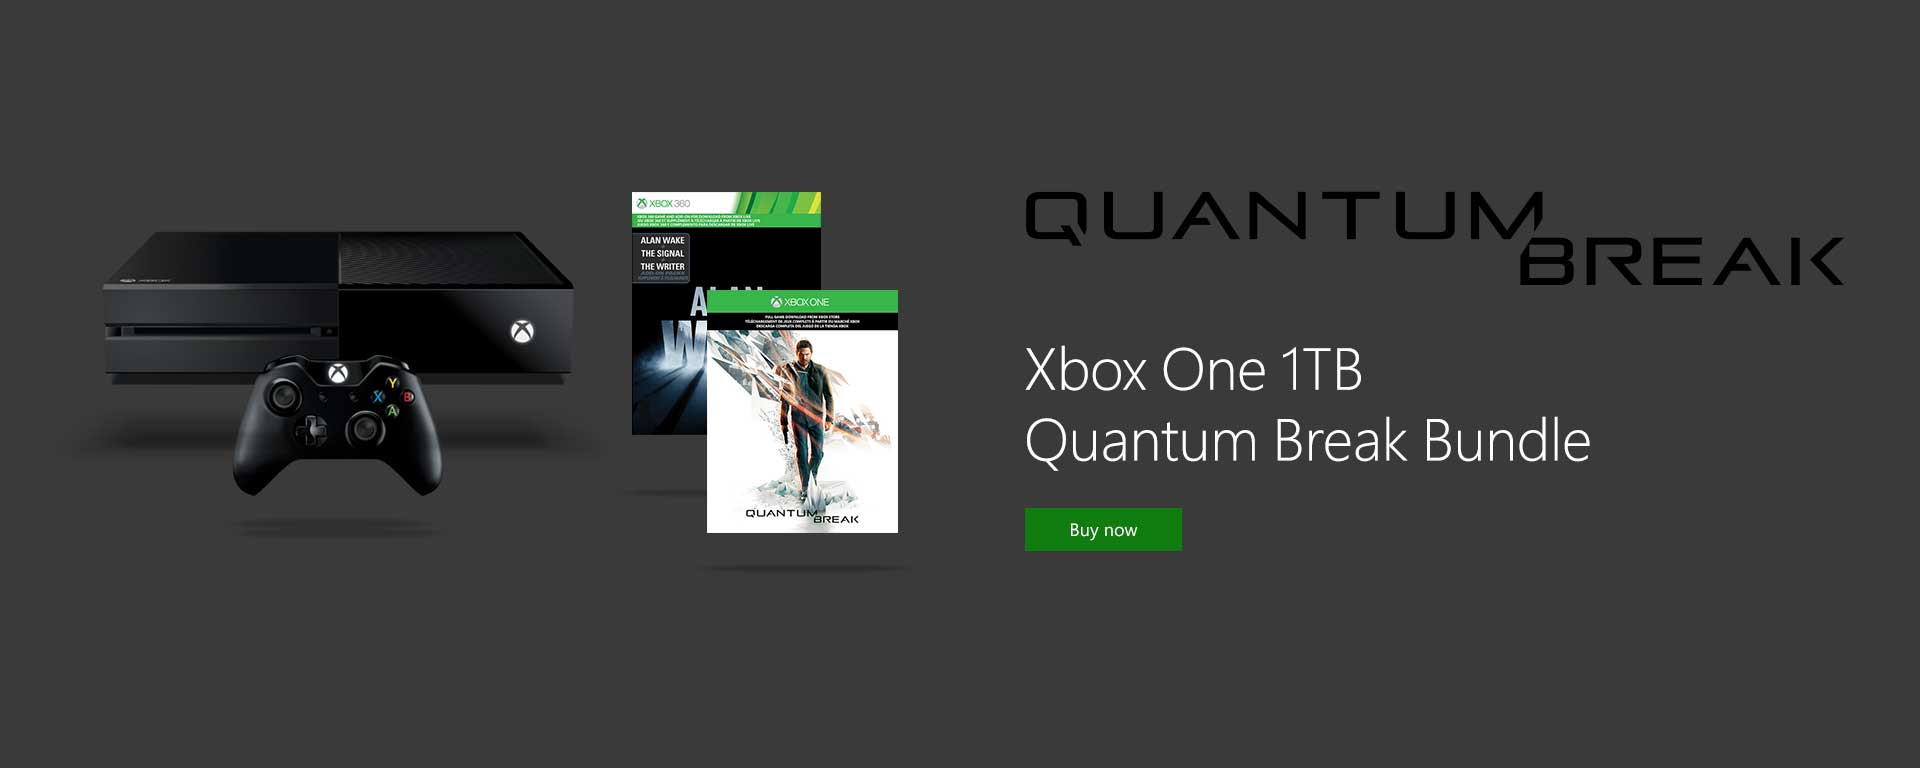 Quantum Beak Bundle